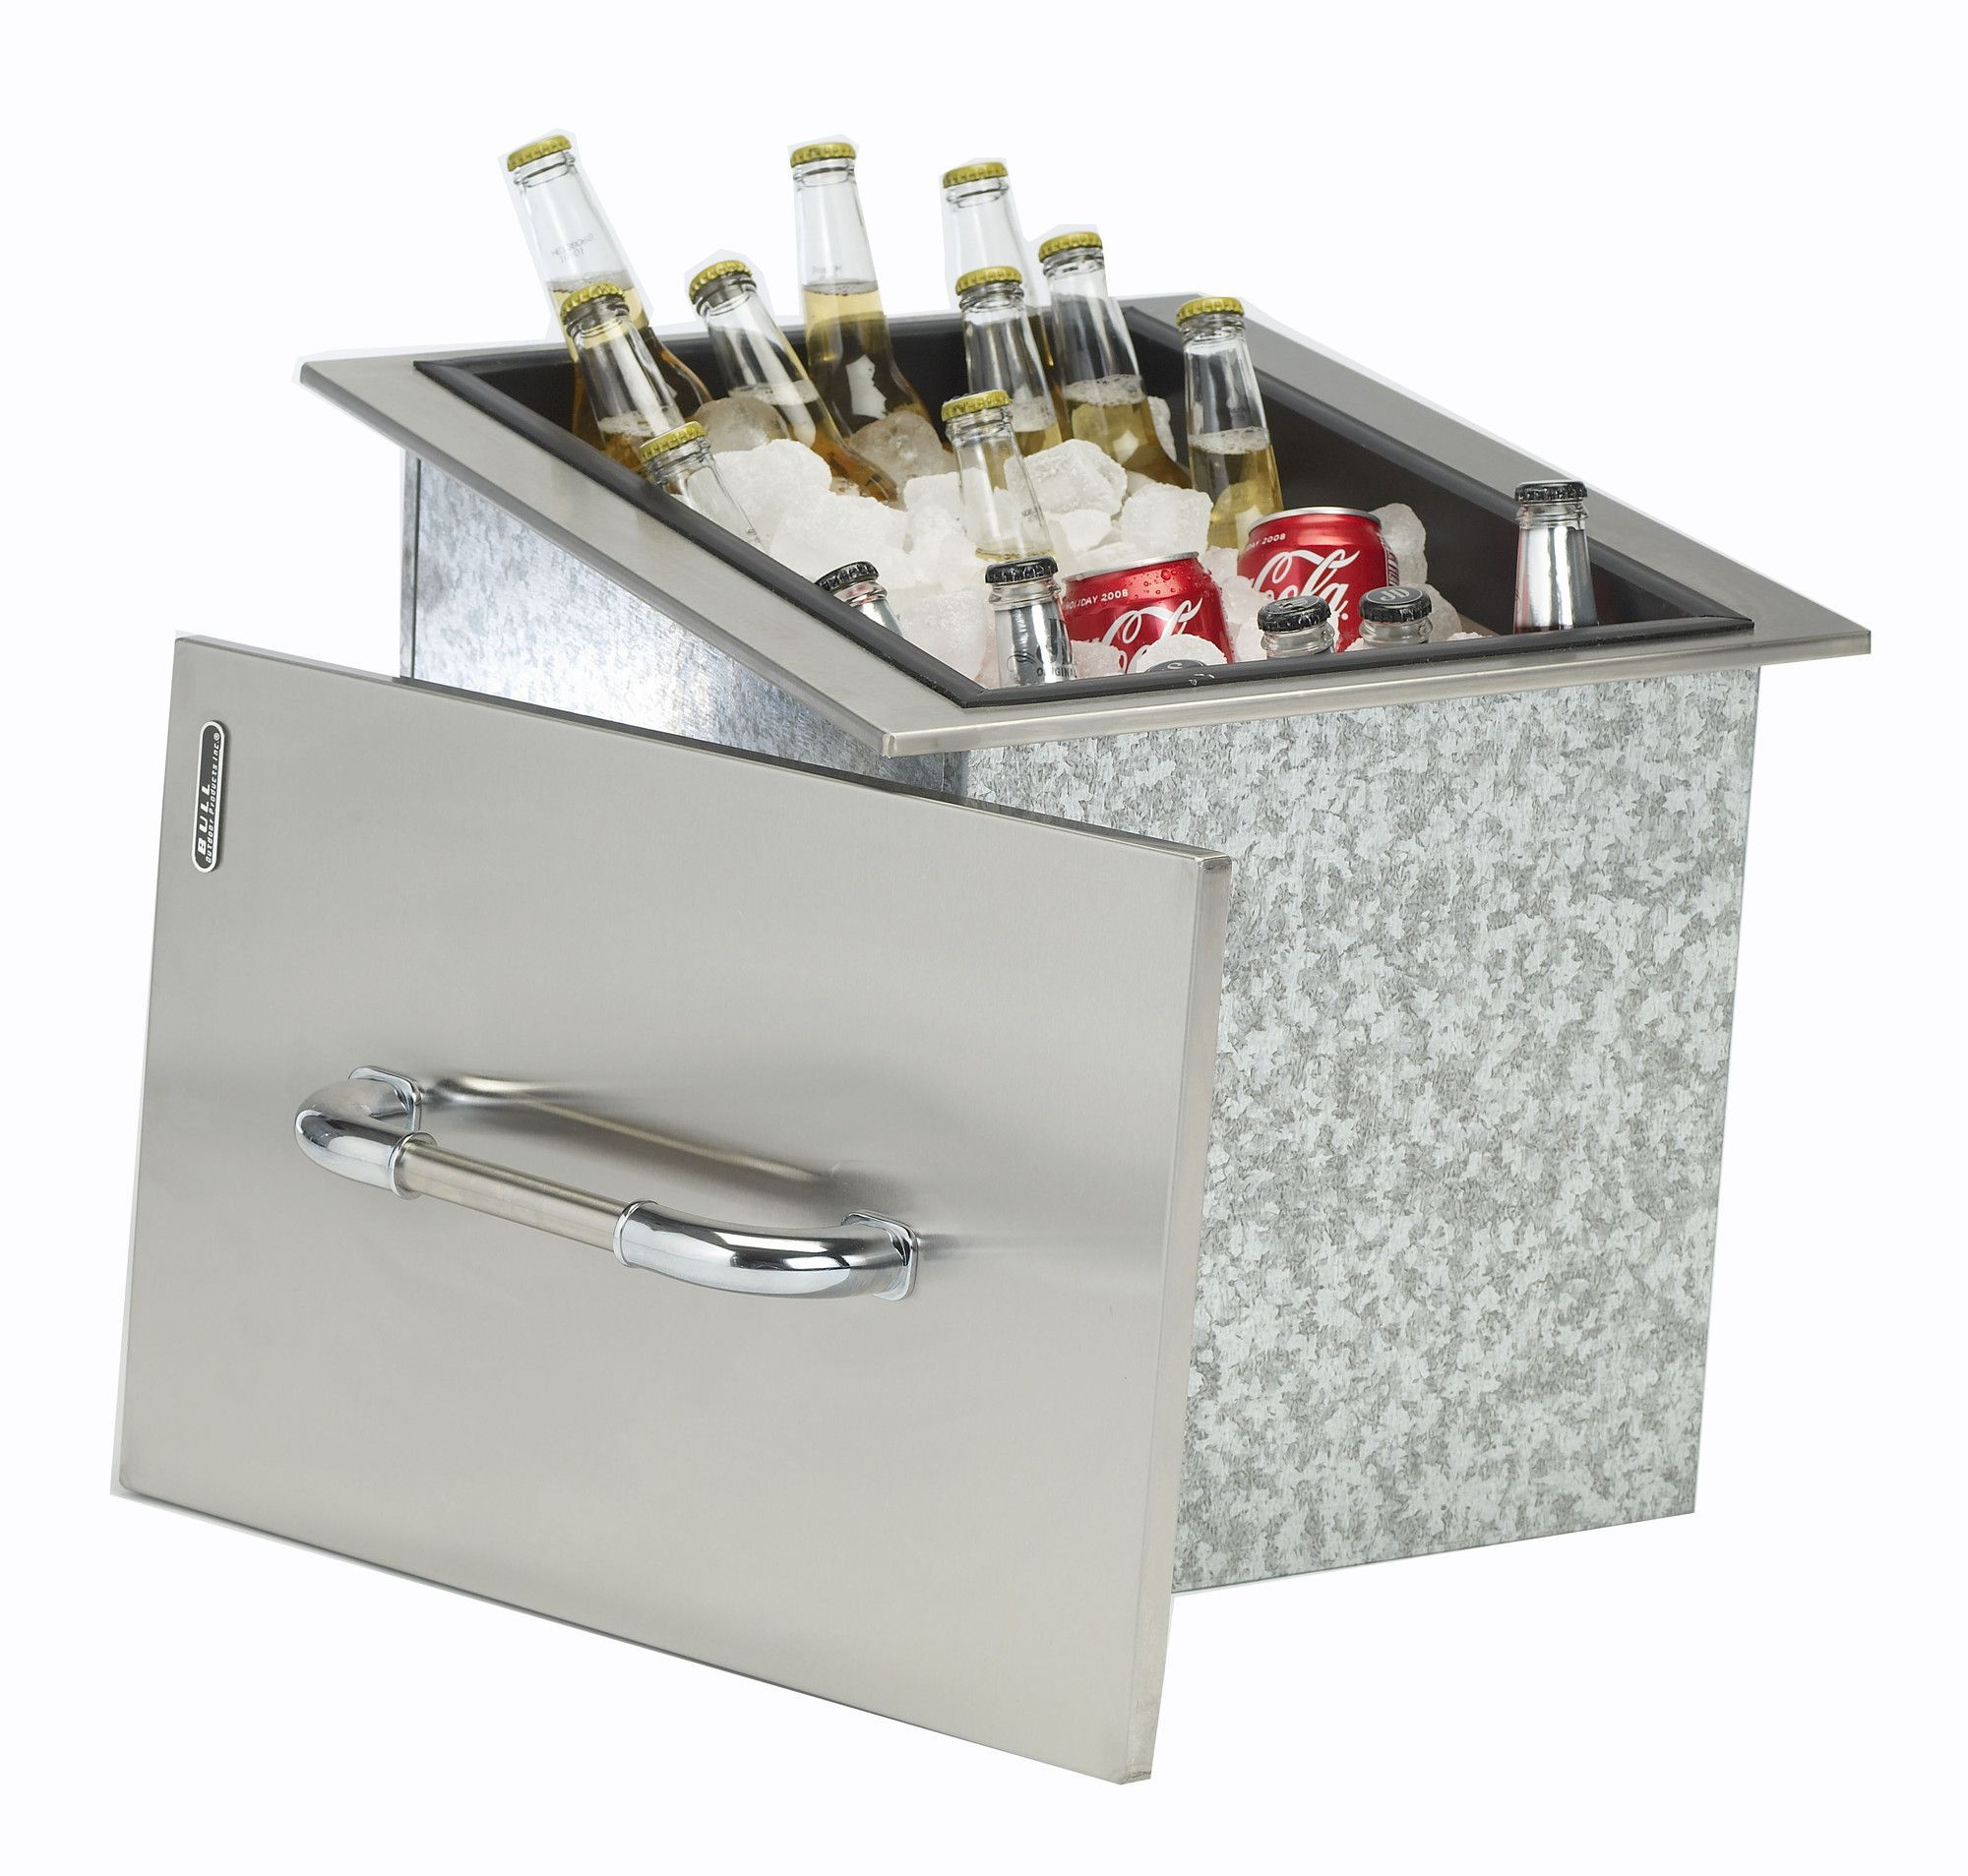 Stainless Steel Drop In Ice Chest Cooler Outdoor Kitchen Design Outdoor Kitchen Ice Chest